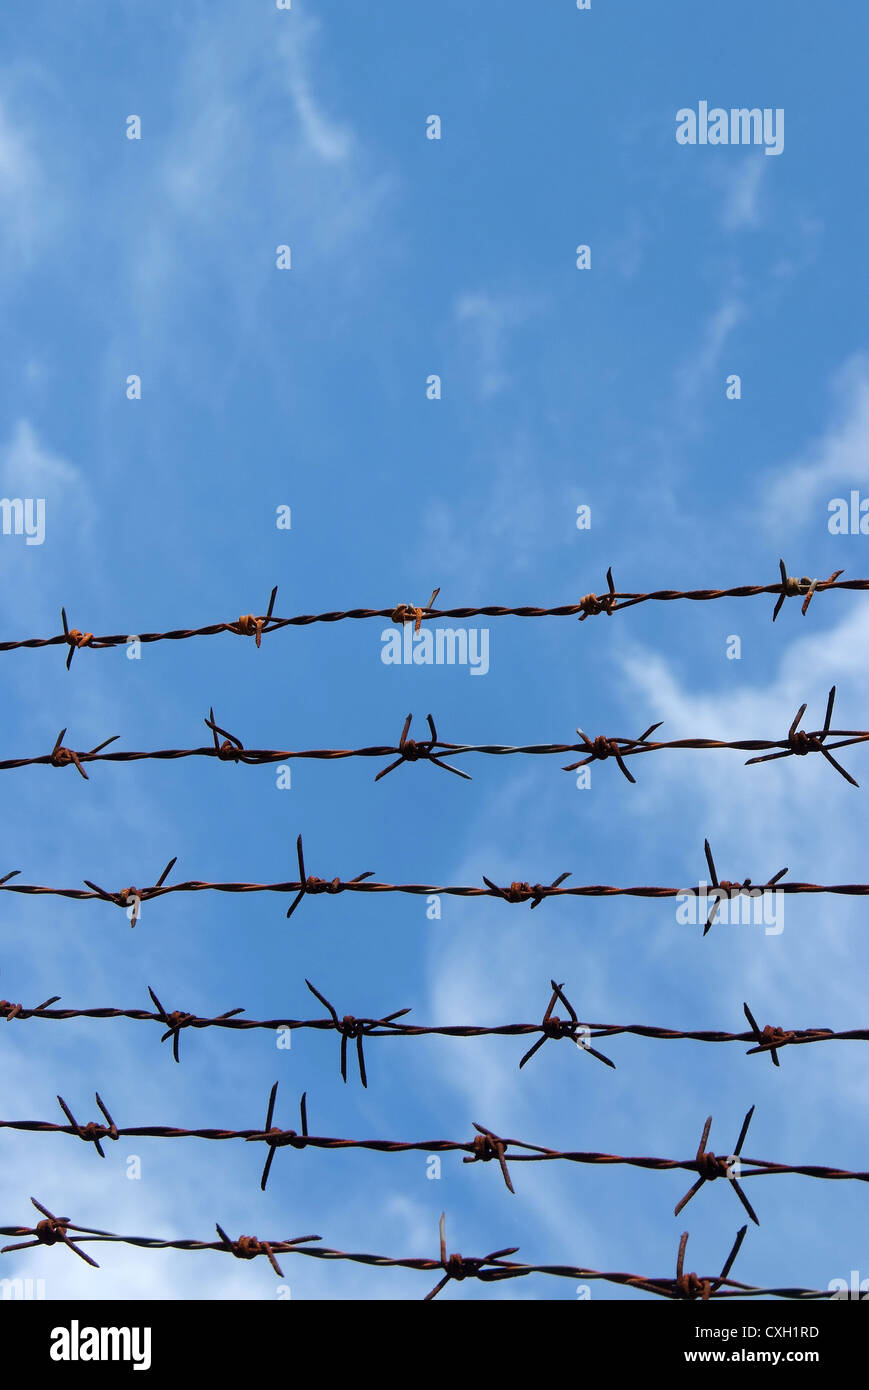 Barb Wire Fence Stock Photos & Barb Wire Fence Stock Images - Page 3 ...